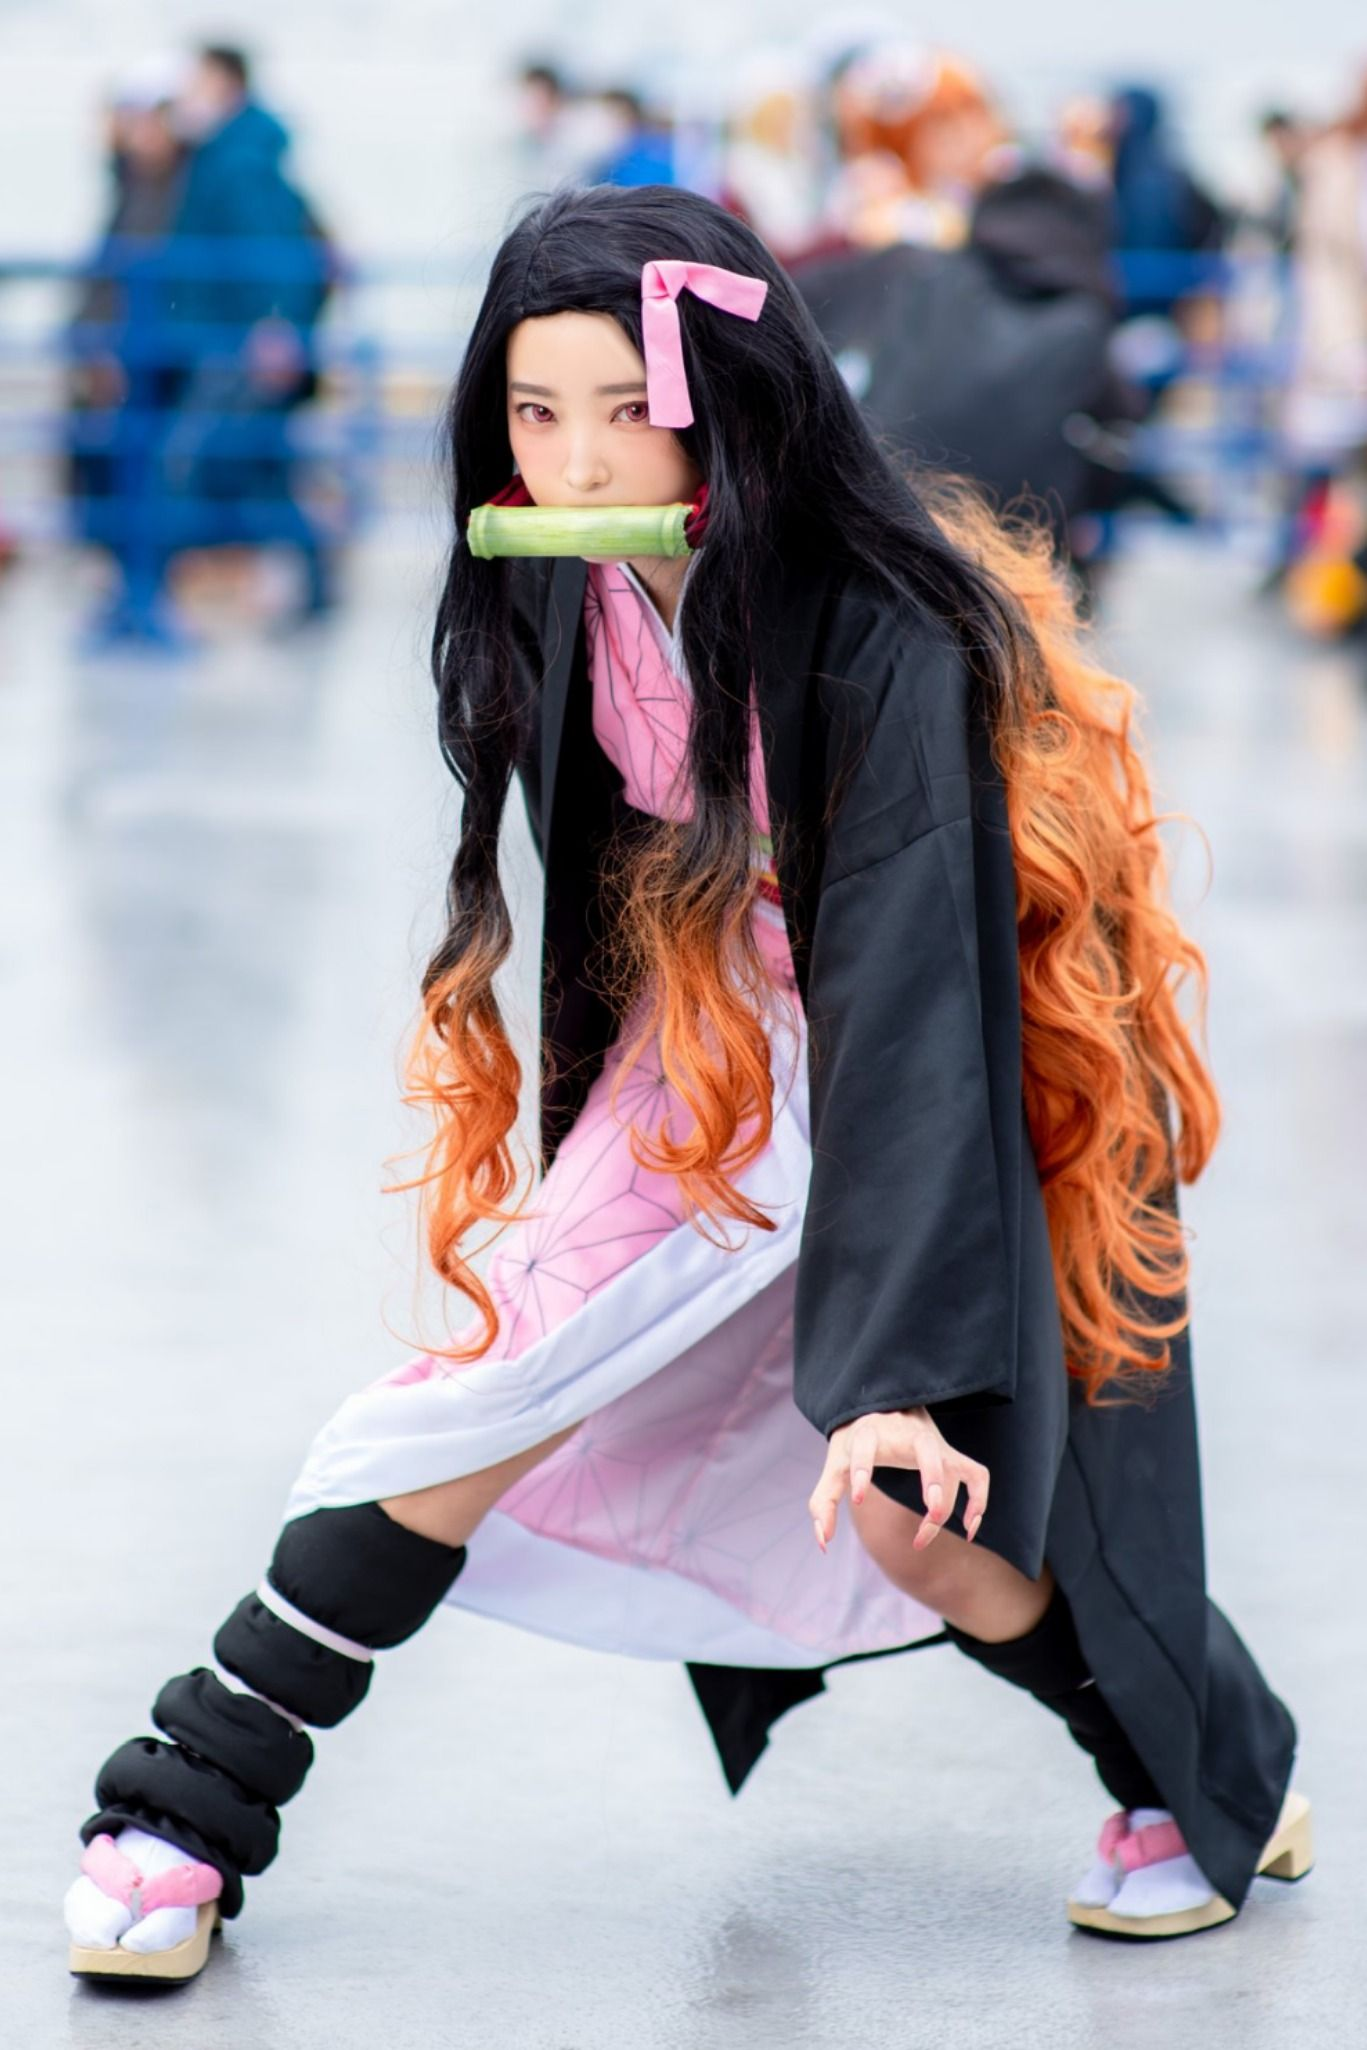 This Demon Slayer Nezuko Kamado cosplayer is in a fierce stance! The cute Nezuko Kamado looks badass, mad, and ready to fight in this full Kimetsu no Yaiba costume. Complete with the pink kimono, the bamboo muzzle, the leg guards, the long black-to-orange hair, the pink nails, and the Japanese Geta sandals, this Nezuko Kamado cosplay is perfect! #KimetsuNoYaiba #DemonSlayer #Nezuko #NezukoKamado #TanjirouKamado #KamadoNezuko #Cosplay #Anime